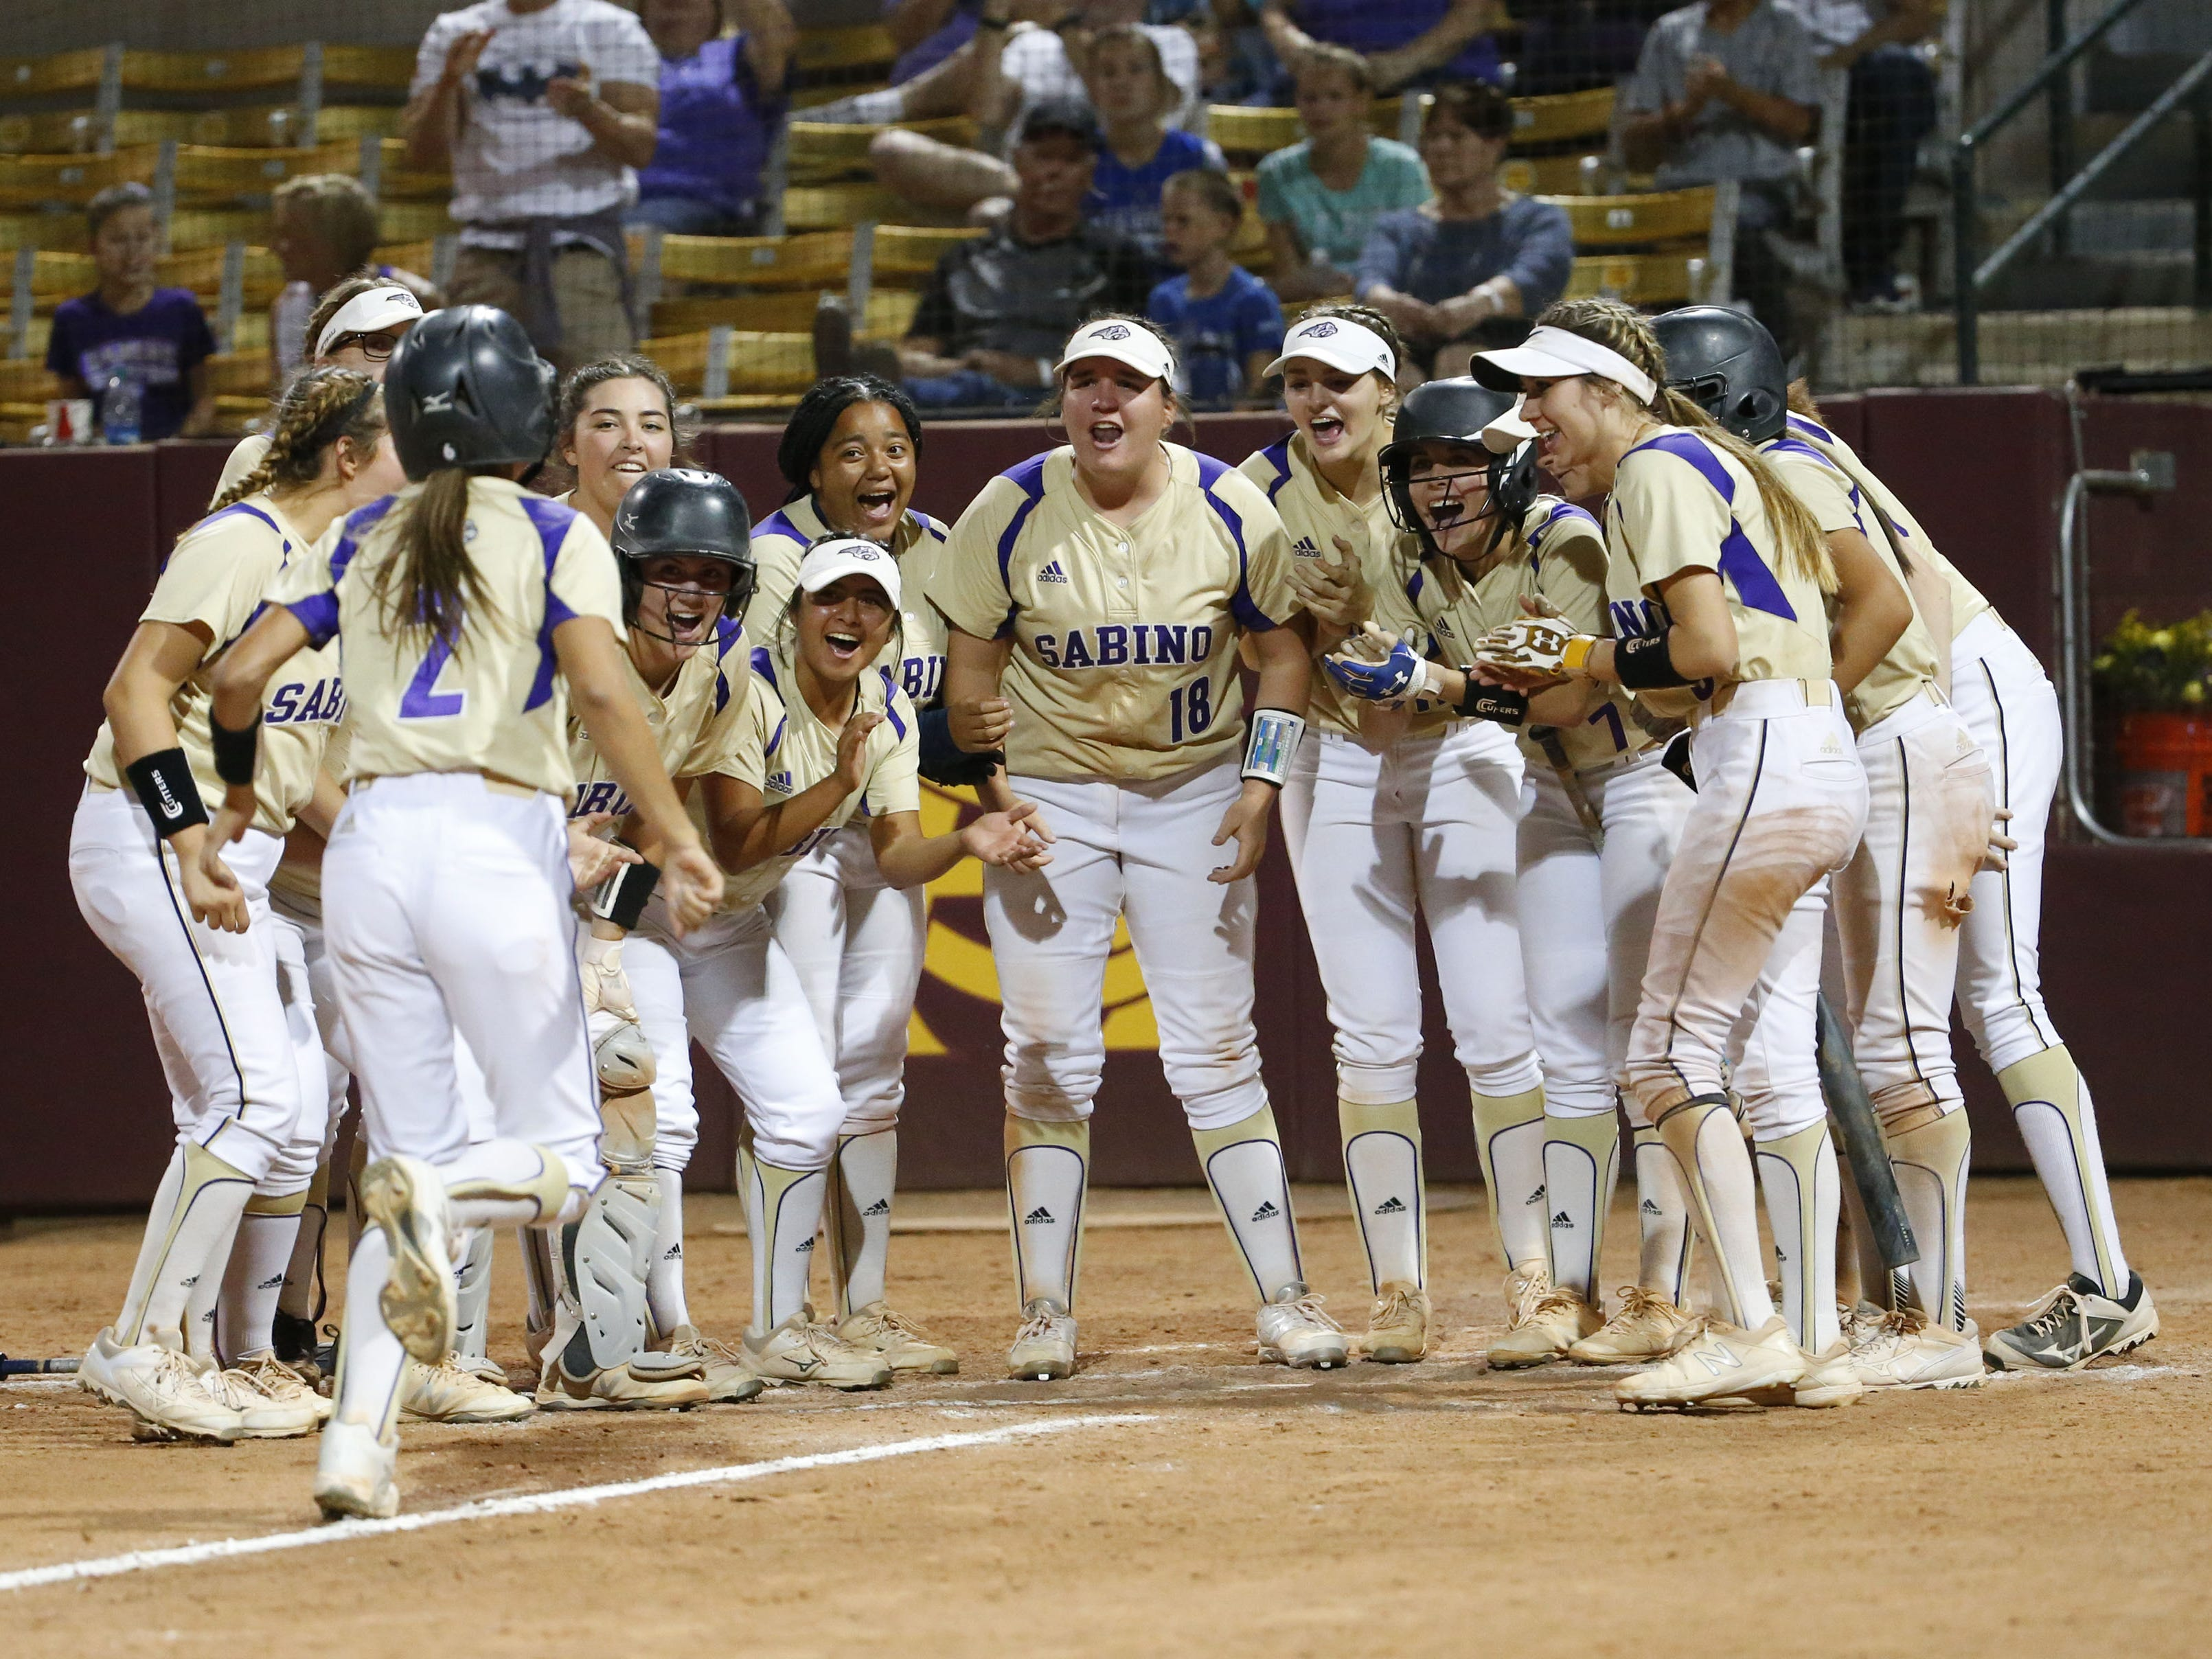 Sabino's Hannah Stark (2) is congratulated by teammates after hitting a solo home run against Snowflake in the 3A softball state championship game in Tempe May 6, 2019.